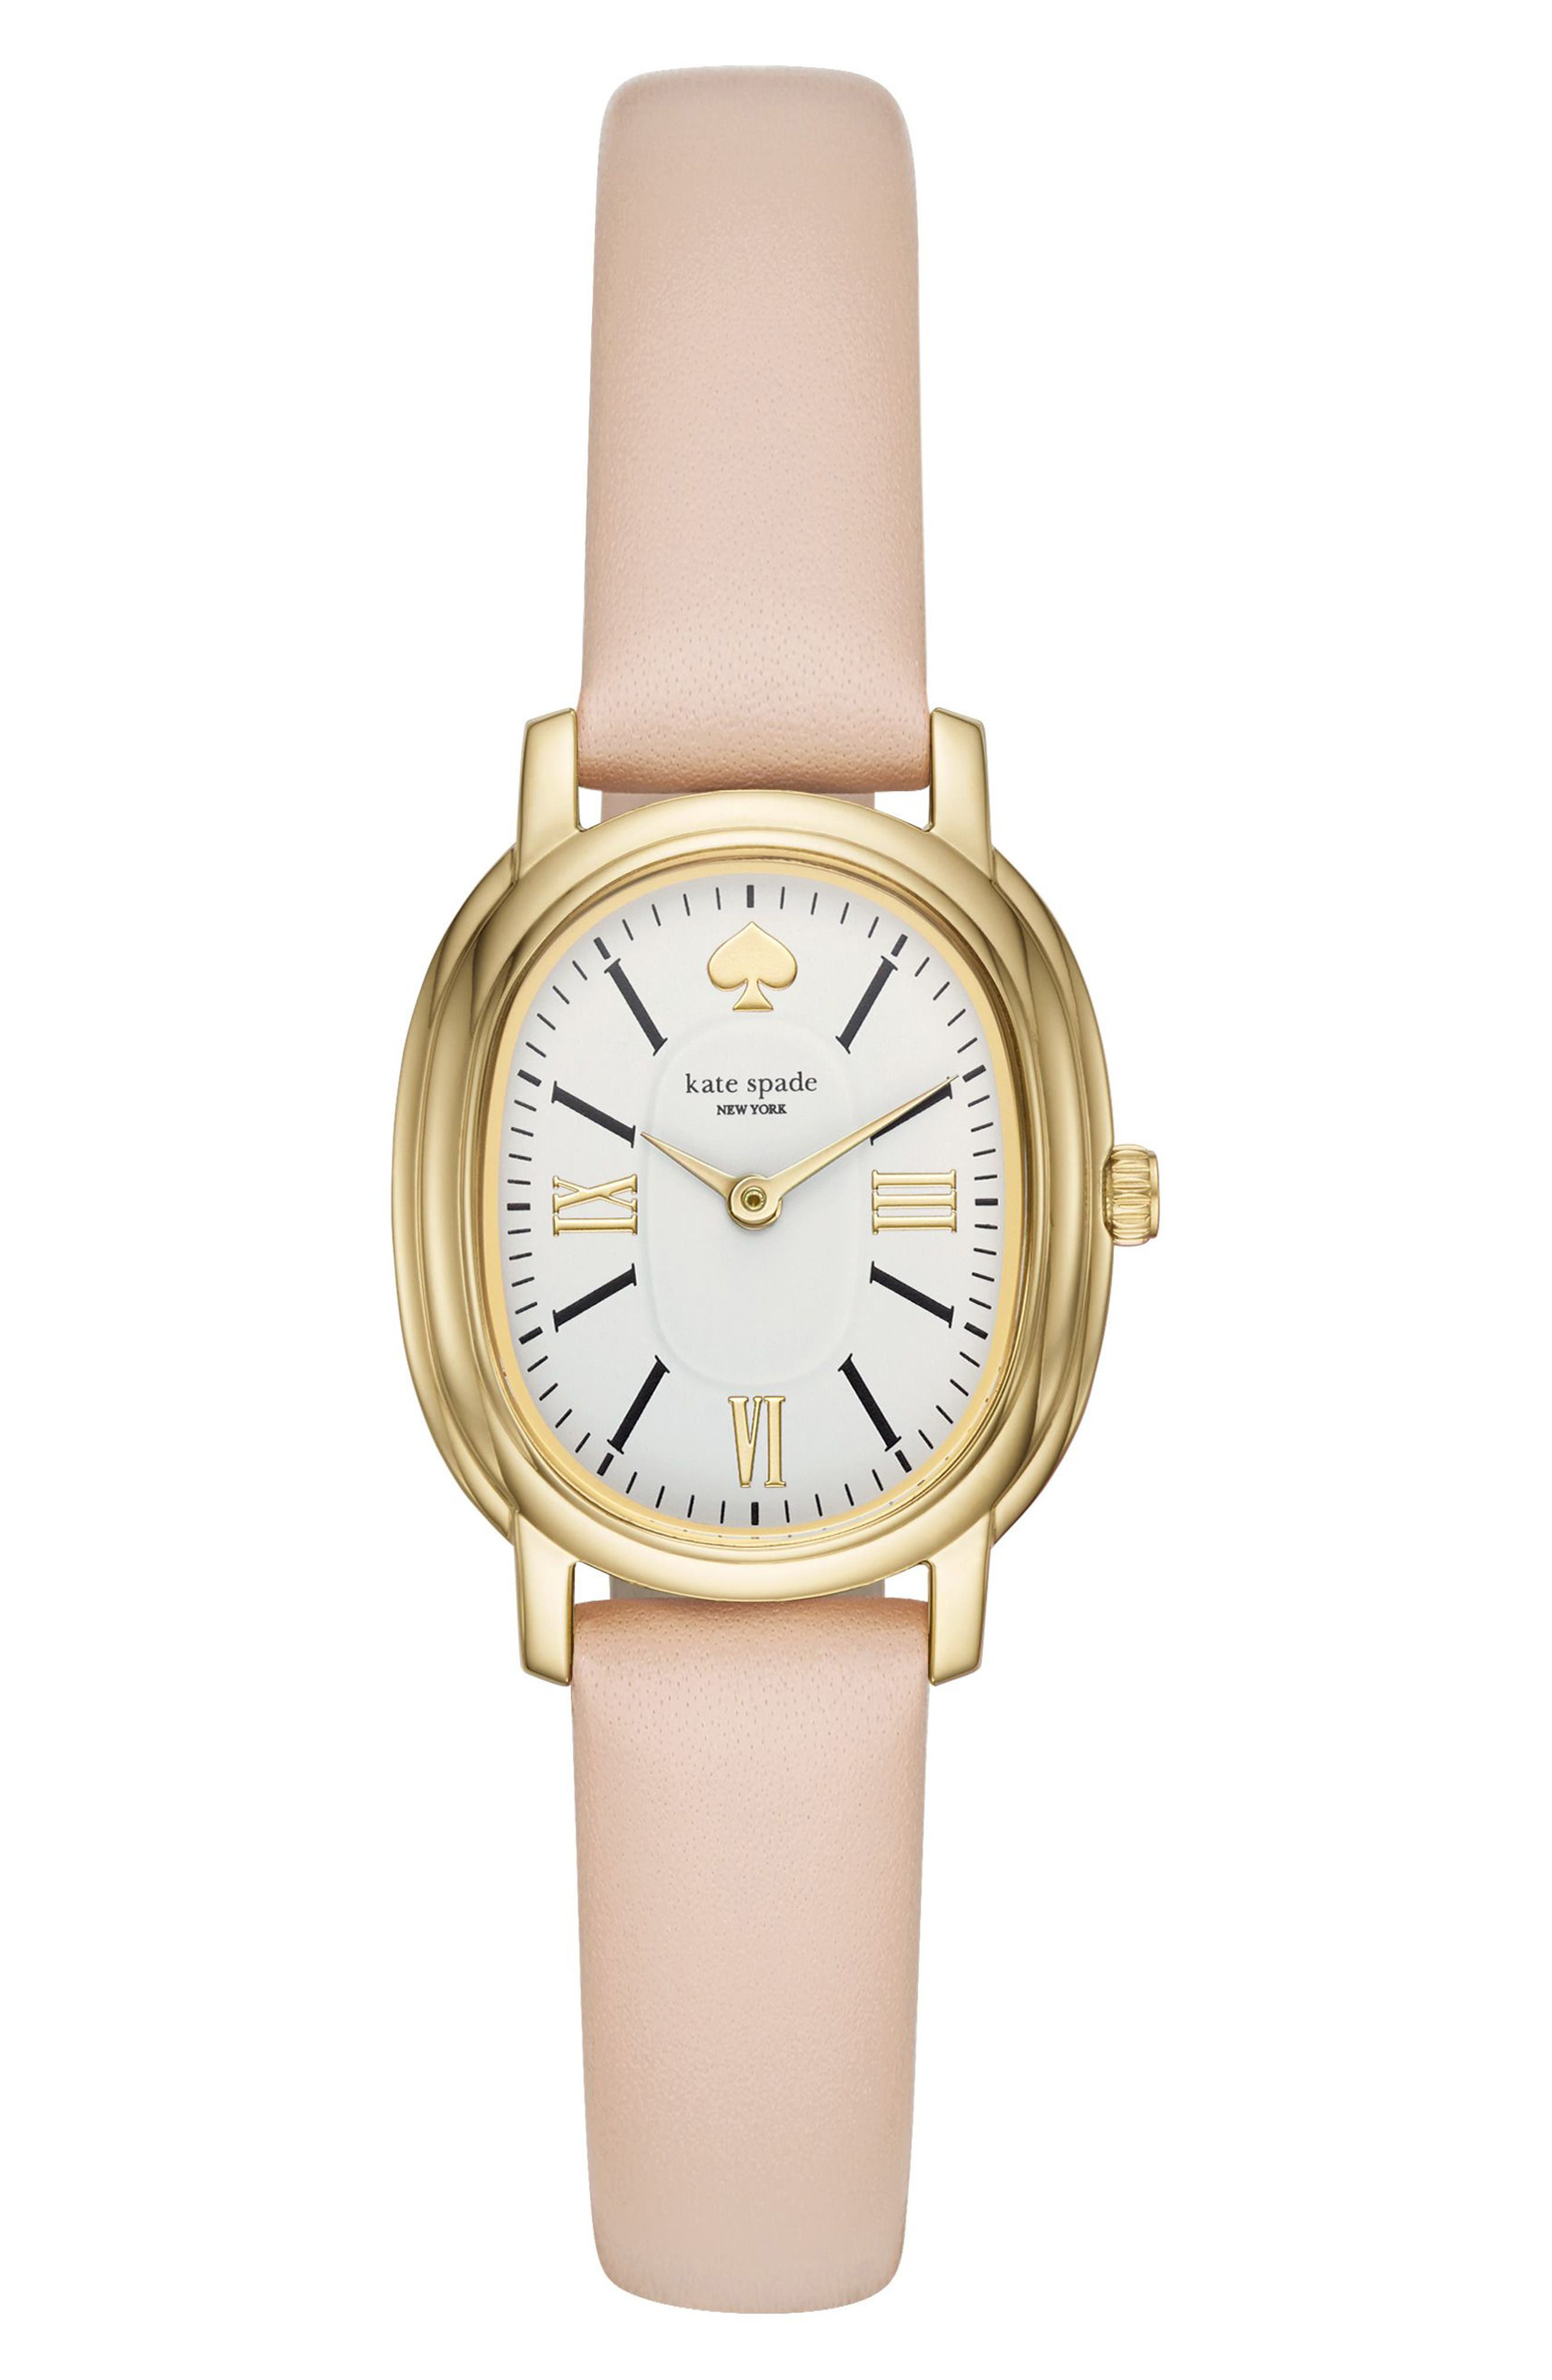 staten leather strap watch, 25mm,                             Main thumbnail 1, color,                             Nude/ White/ Gold